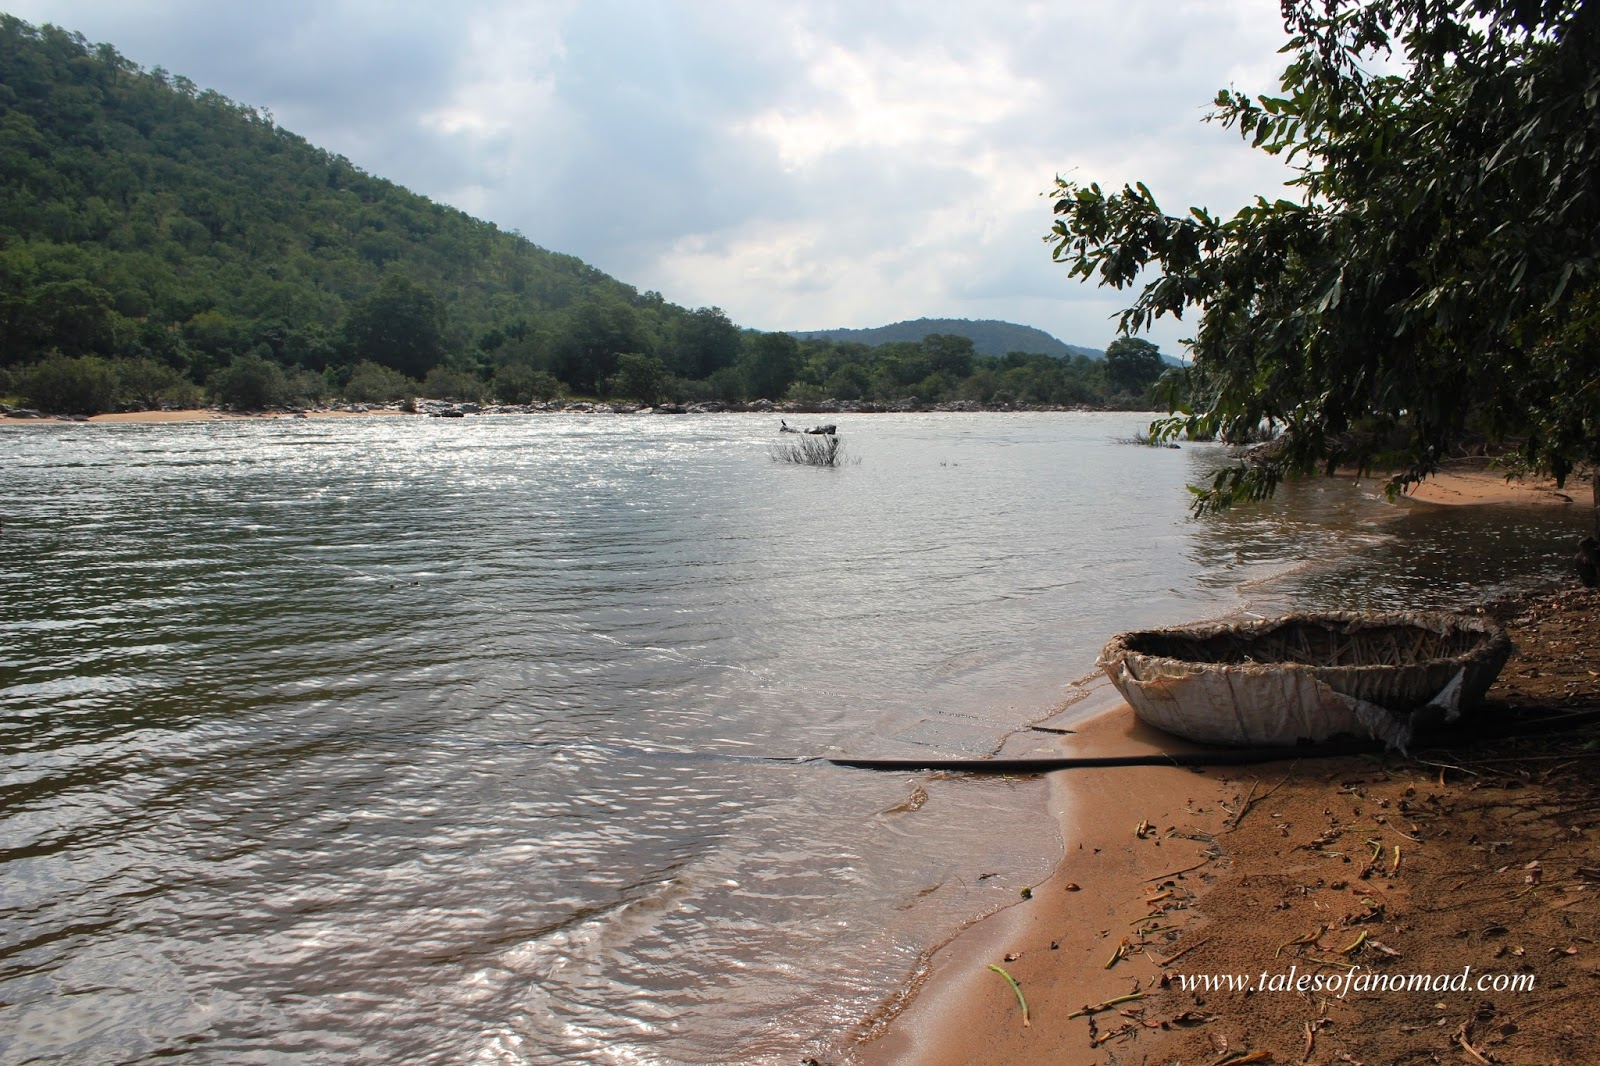 cauvery gurgled its way beside the cottages with green hills in the background  the recent rains had swelled the river and green was the predominant colour  tales of a nomad  december 2015  rh   talesofanomad